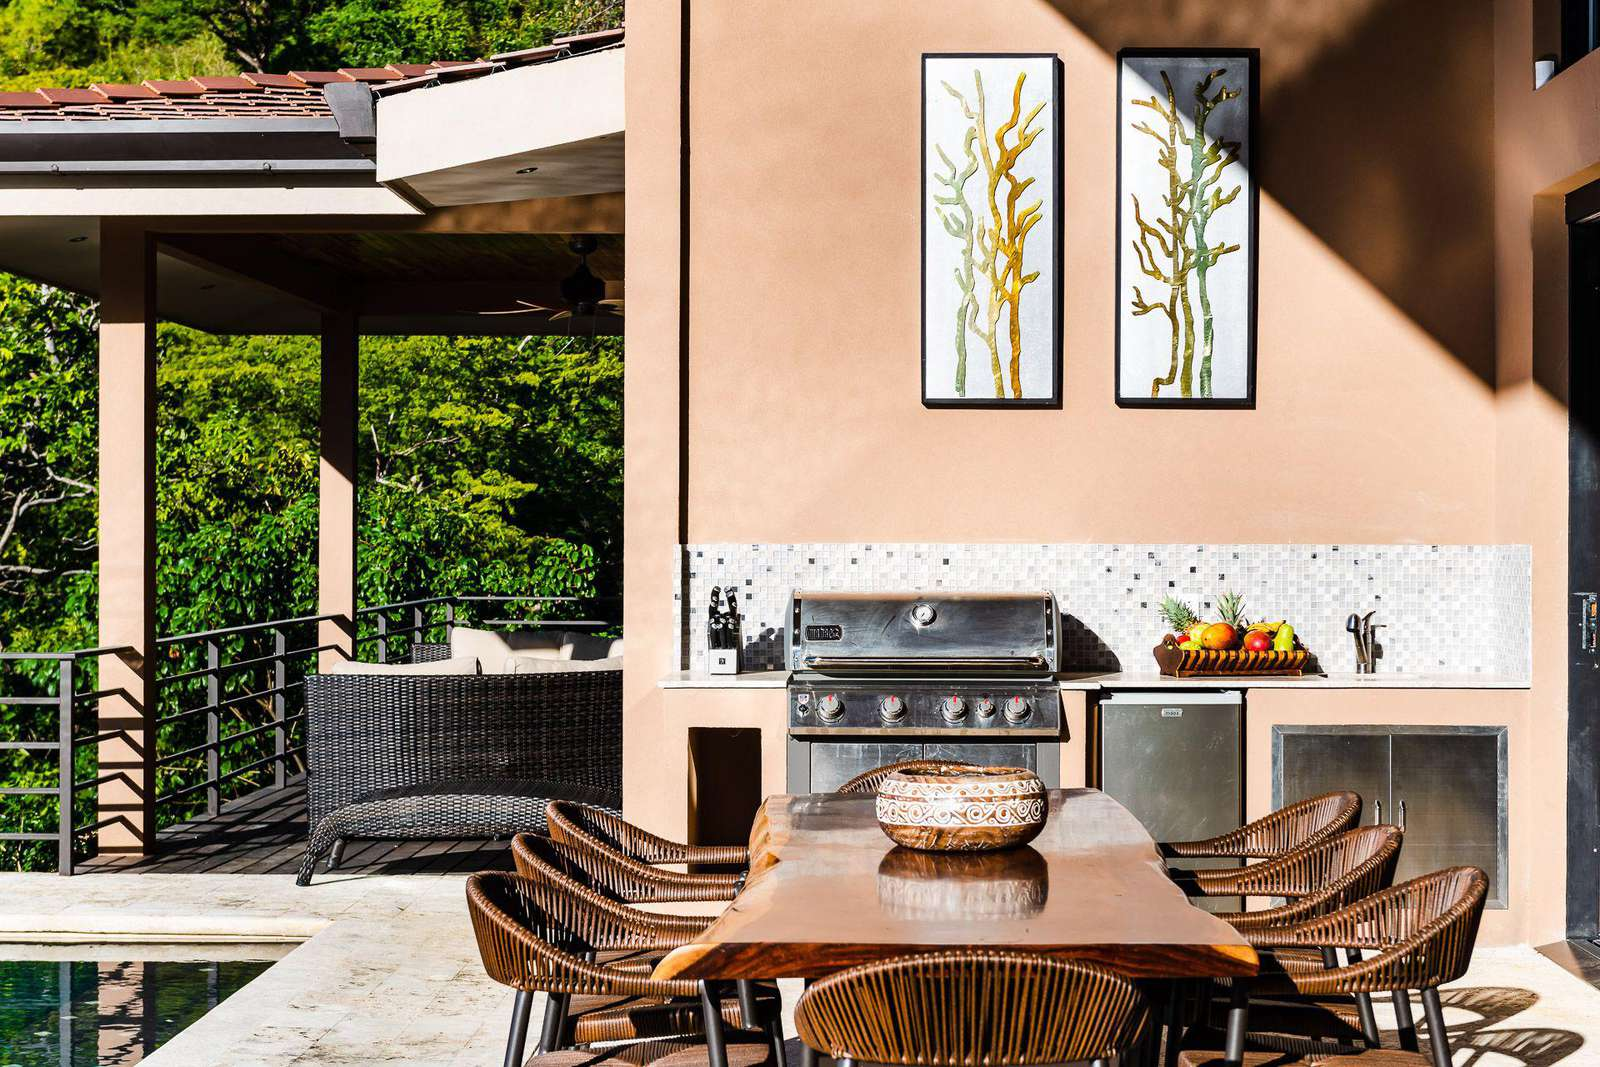 BBQ grill area, outdoor dining, poolside